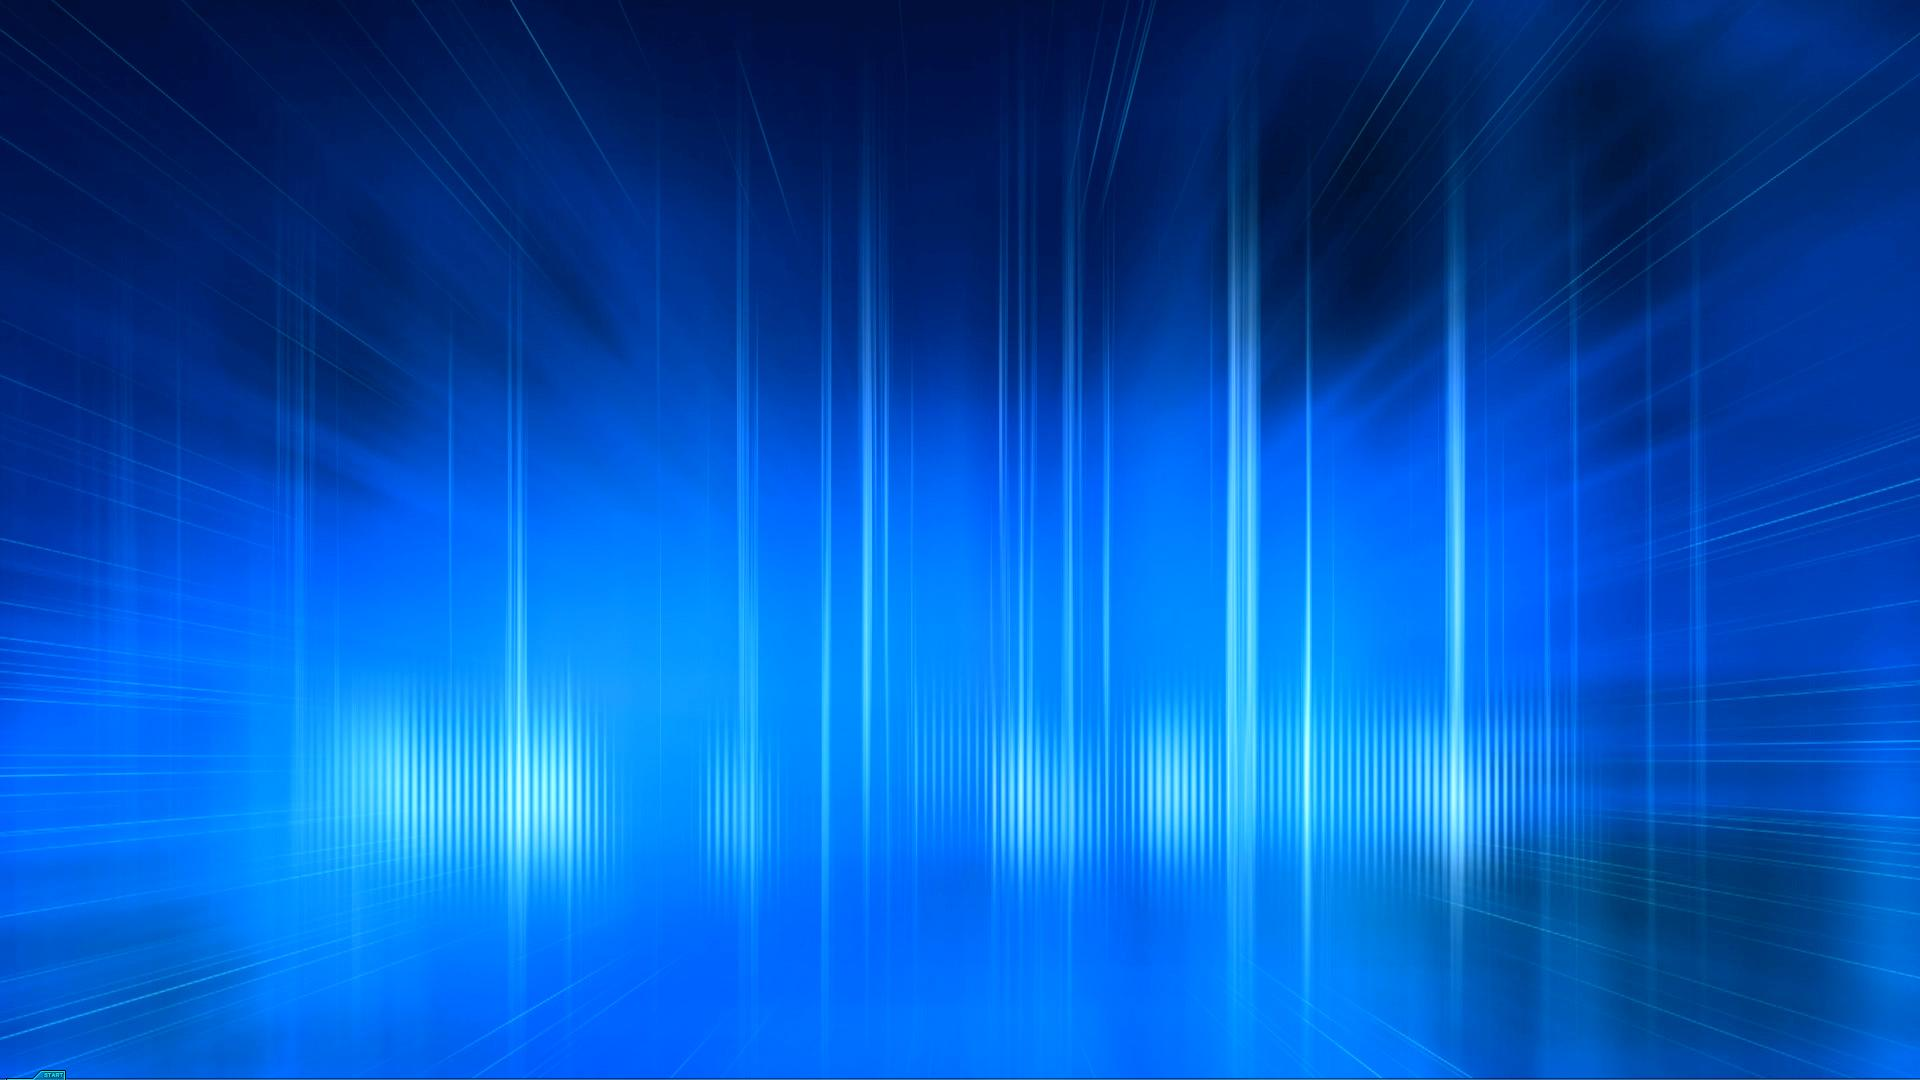 Blue HI TECH Abstract Background Vector 01   Vector Background 1920x1080